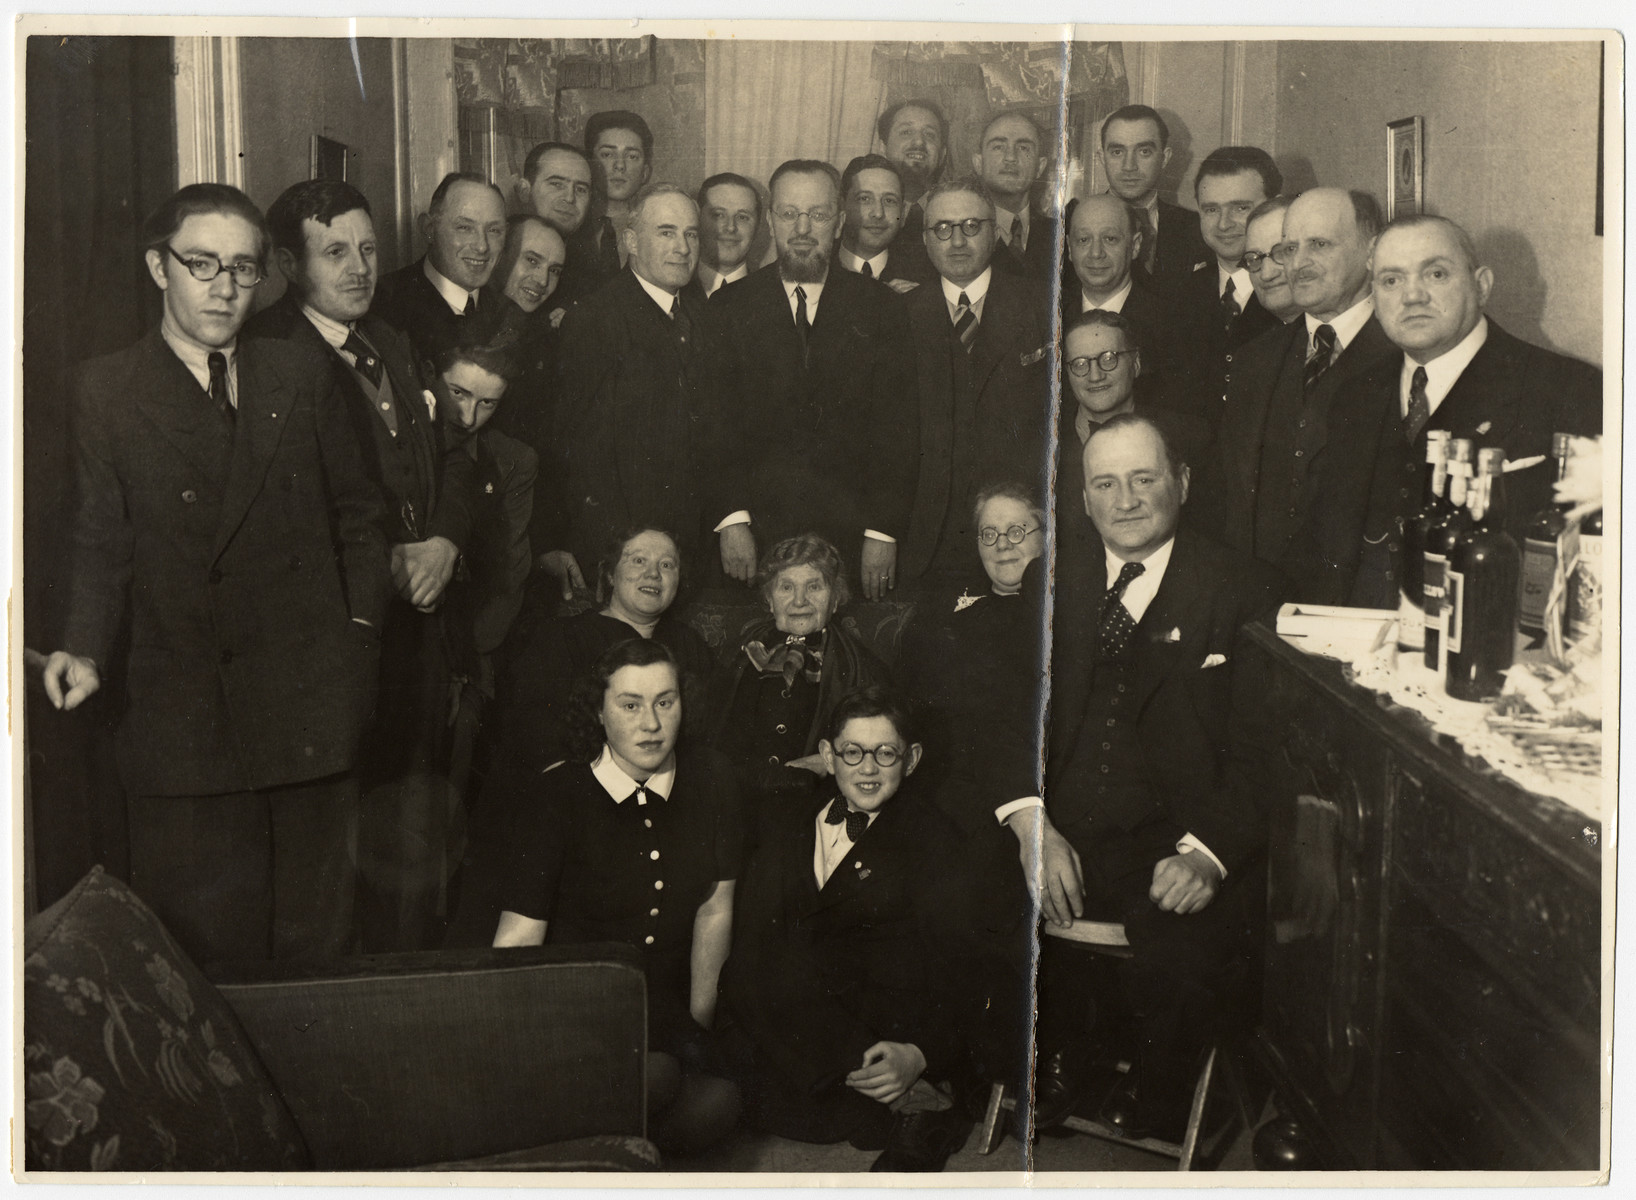 Group portrait of family and friends at a birthday celebration.  The photograph was taken on the occasion of the 75th birthday of Rosa Nachemsohn, seated in the middle.   Among those pictured is donor's father, Herman Krogman (standing to the right of the man in the middle, with glasses).